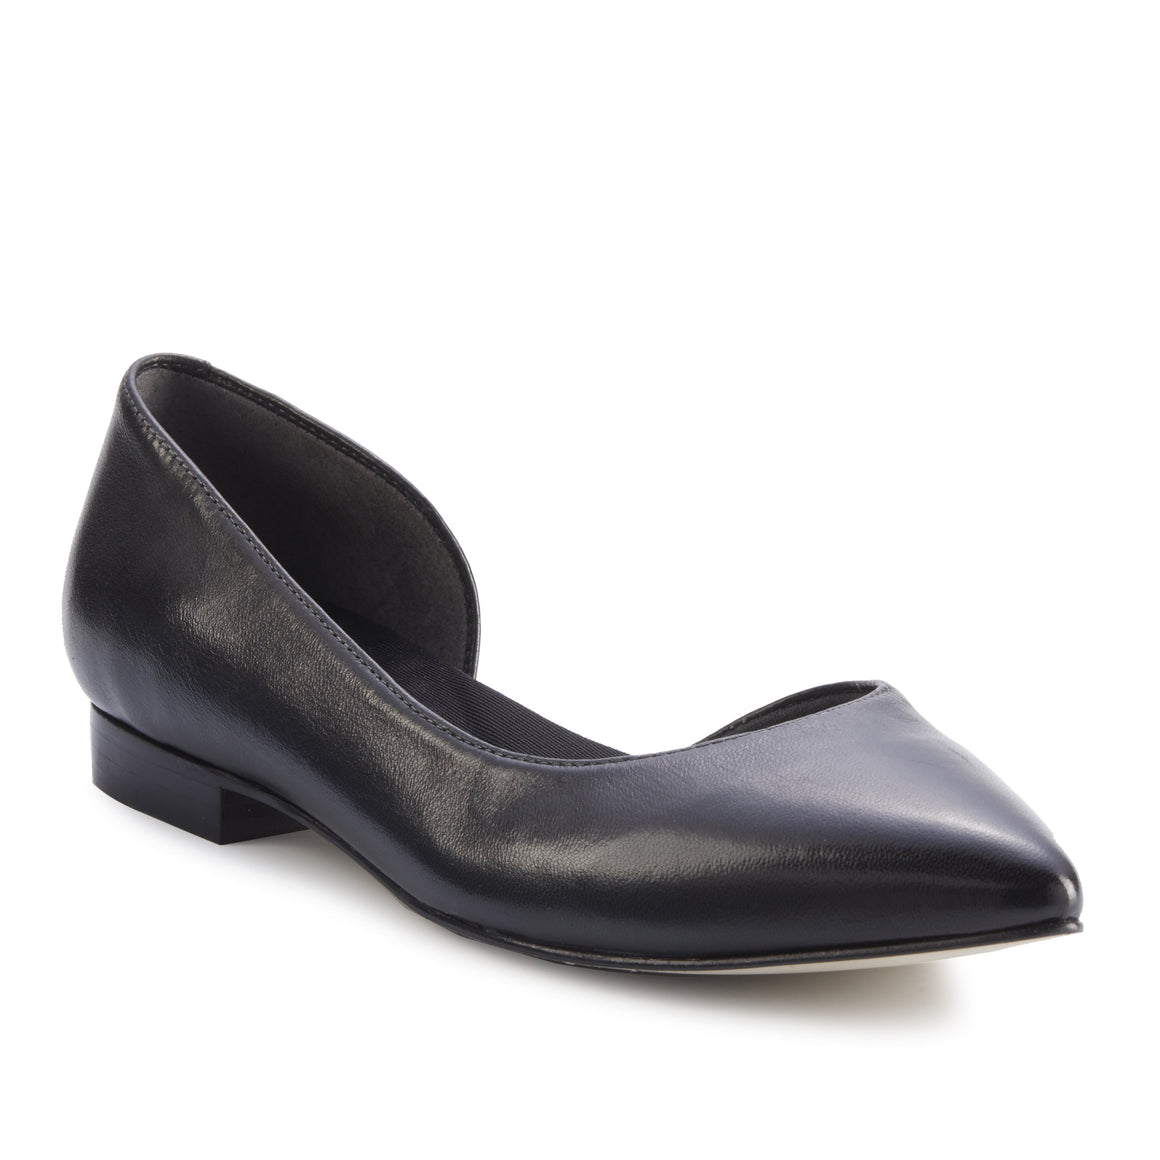 Women's Comfort Flat- Raya in Black Leather